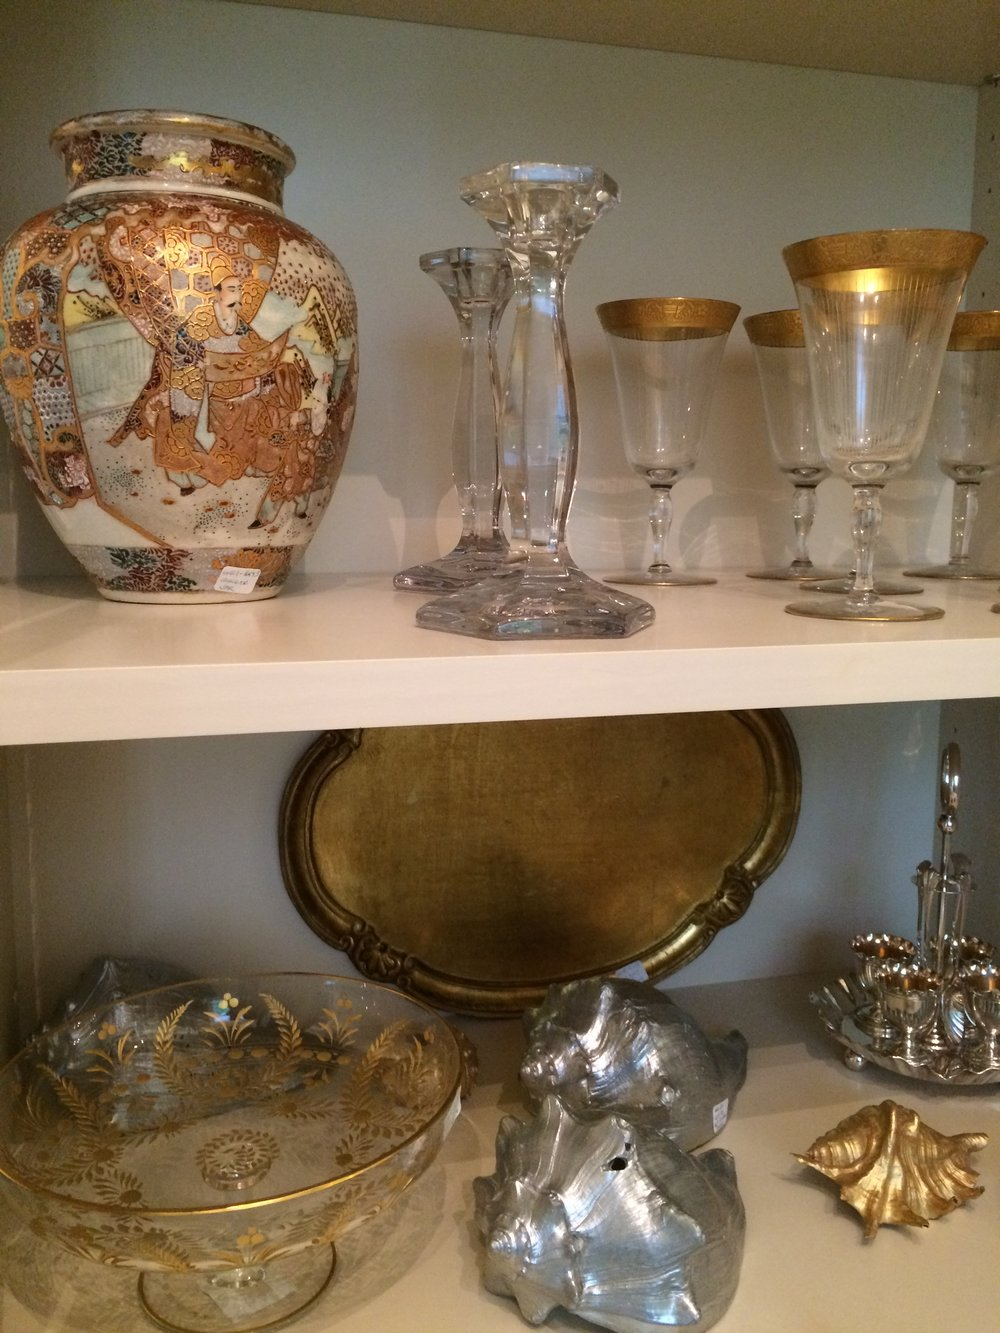 A ginger jar, candle sticks, gold rimmed stem ware, gilt trays and etc